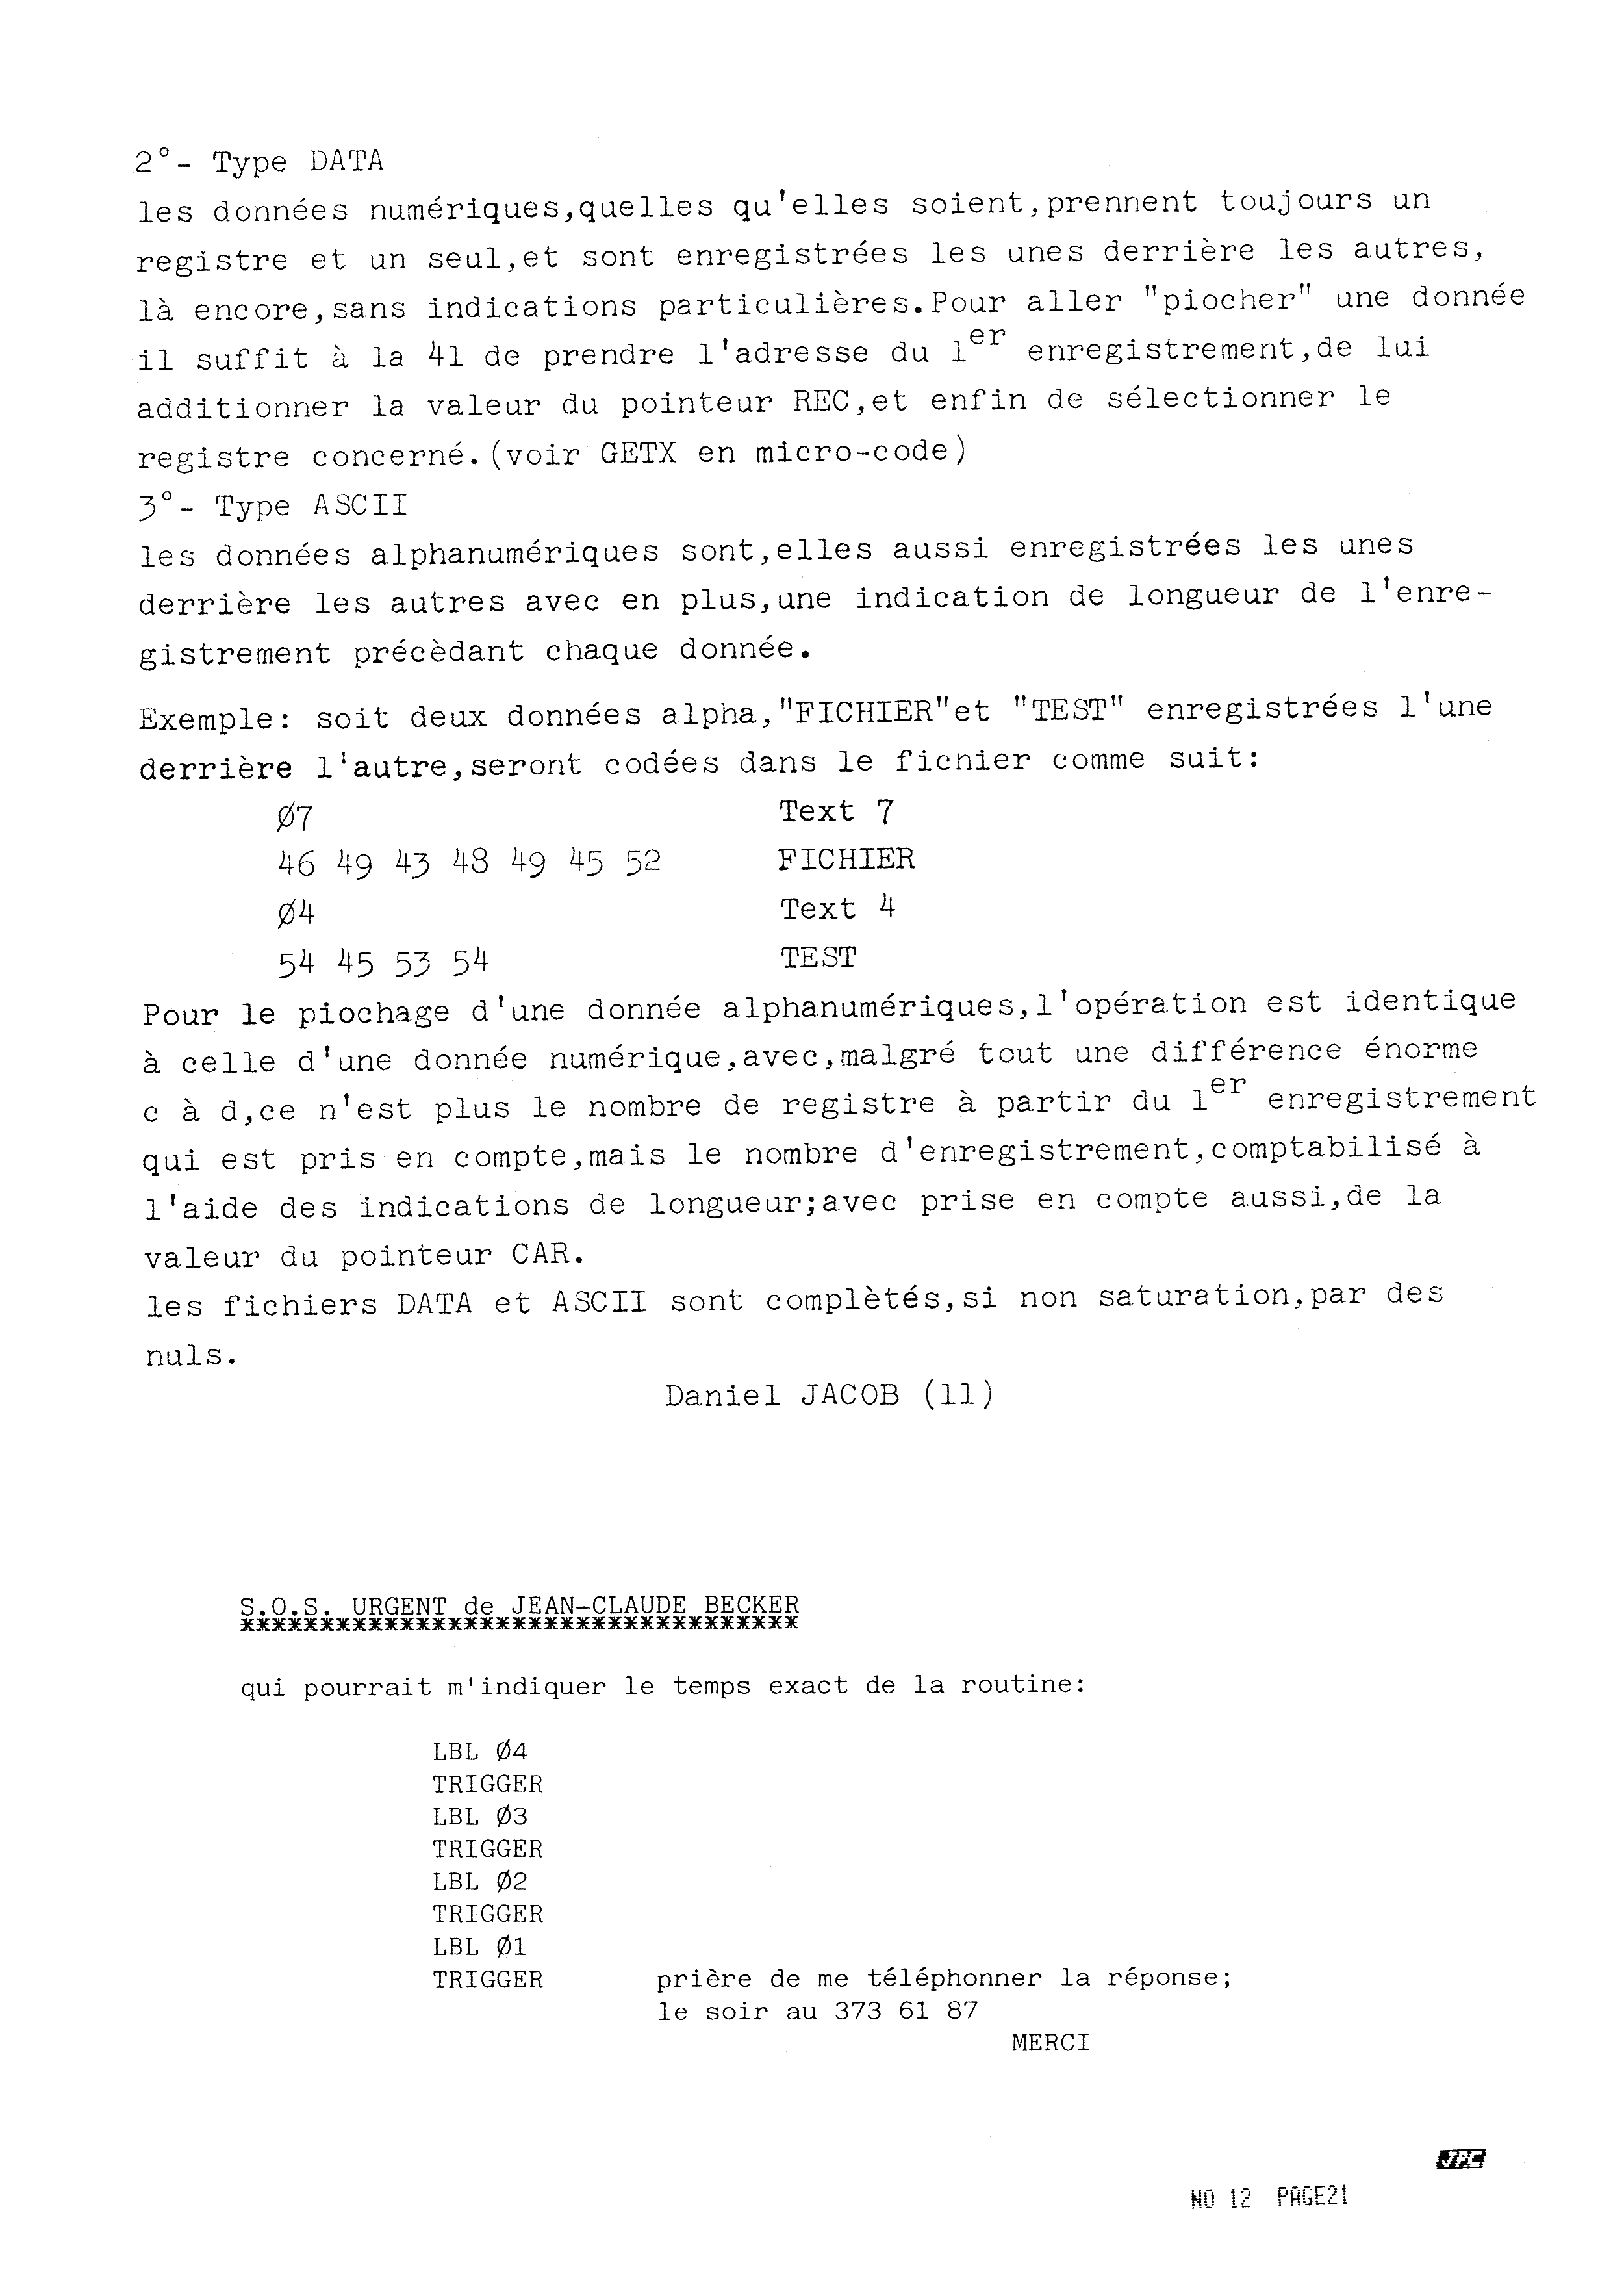 Jp-12-page-21-1000